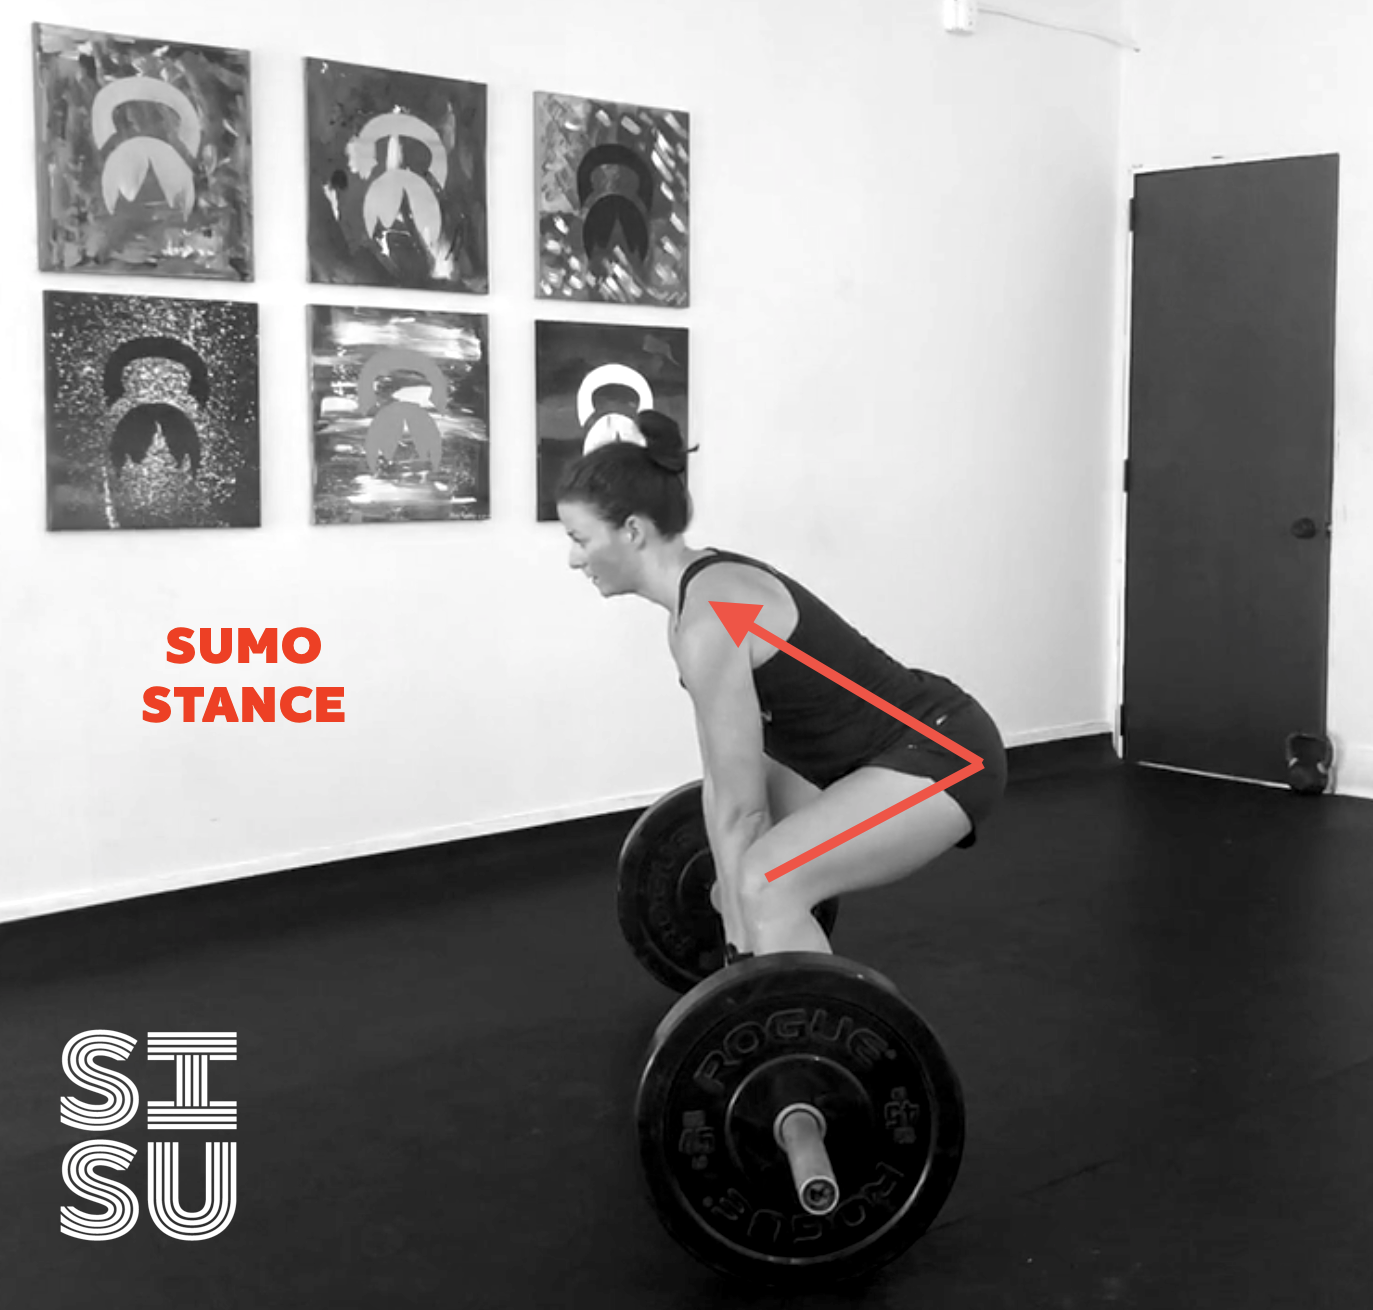 Sumo stance brings the spine more vertical